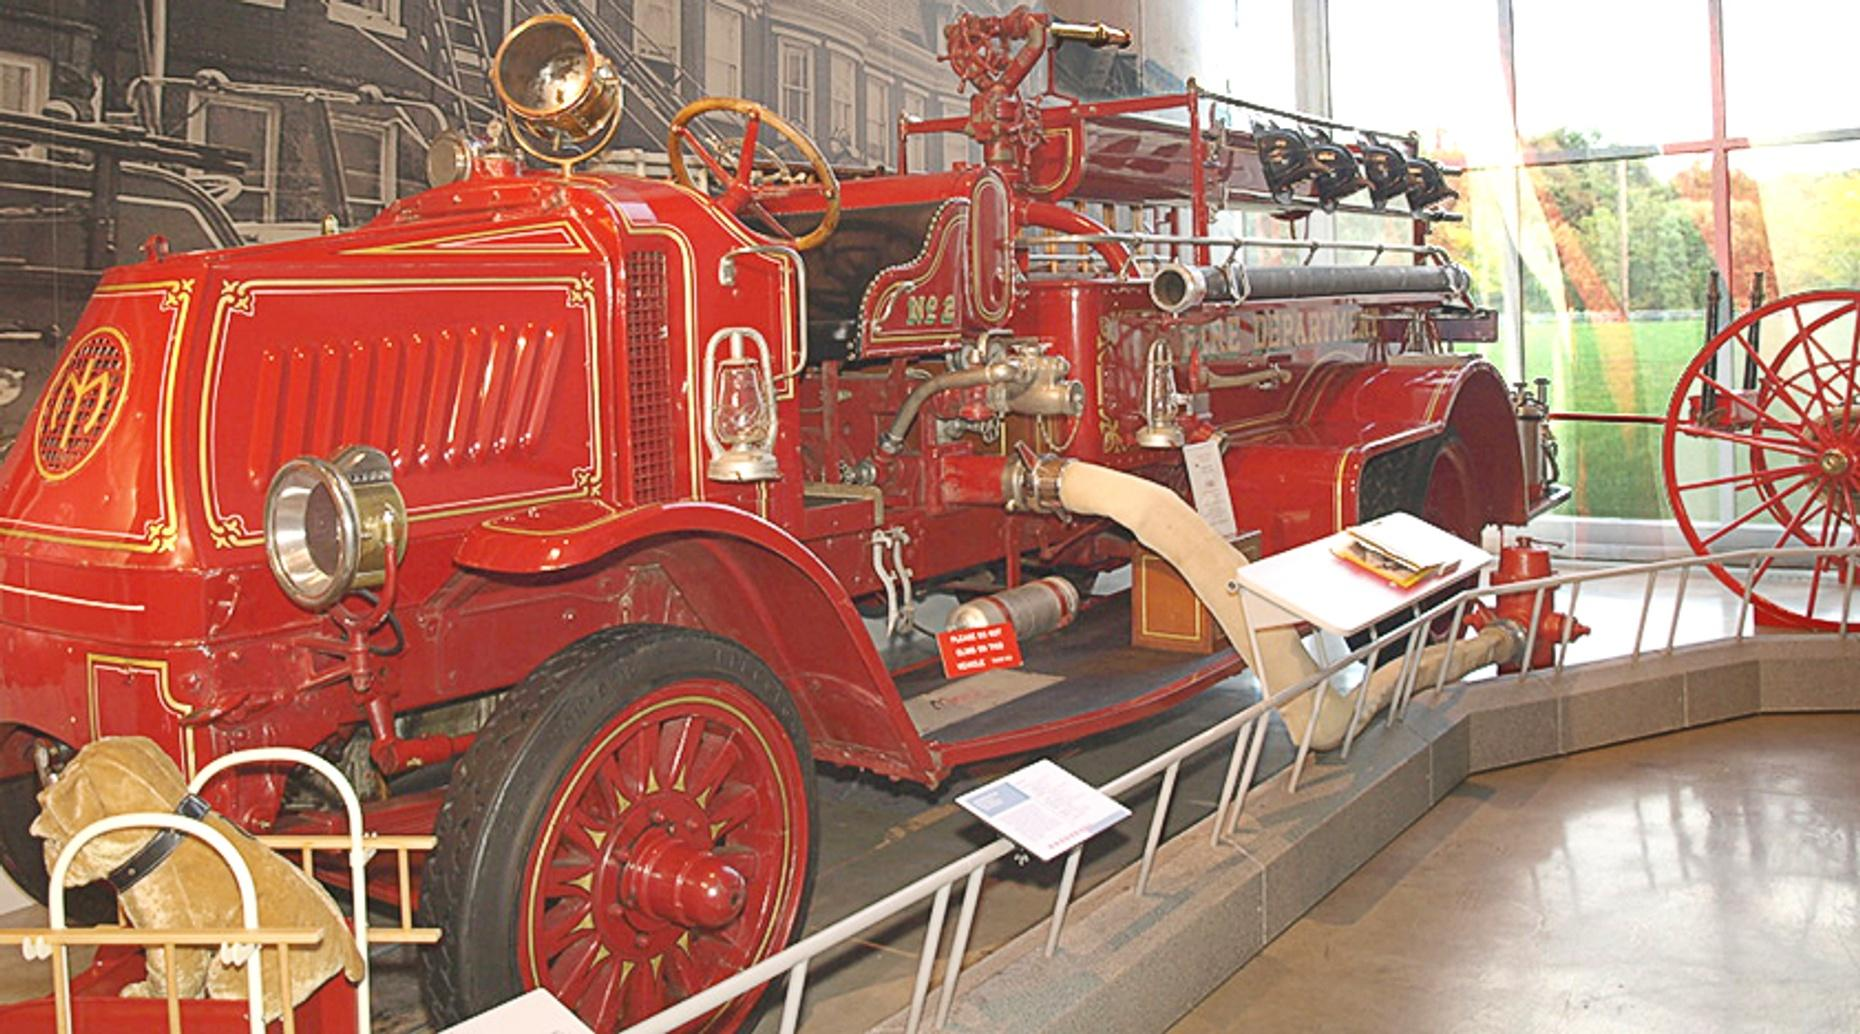 Allentown Antique Car Museum Admission